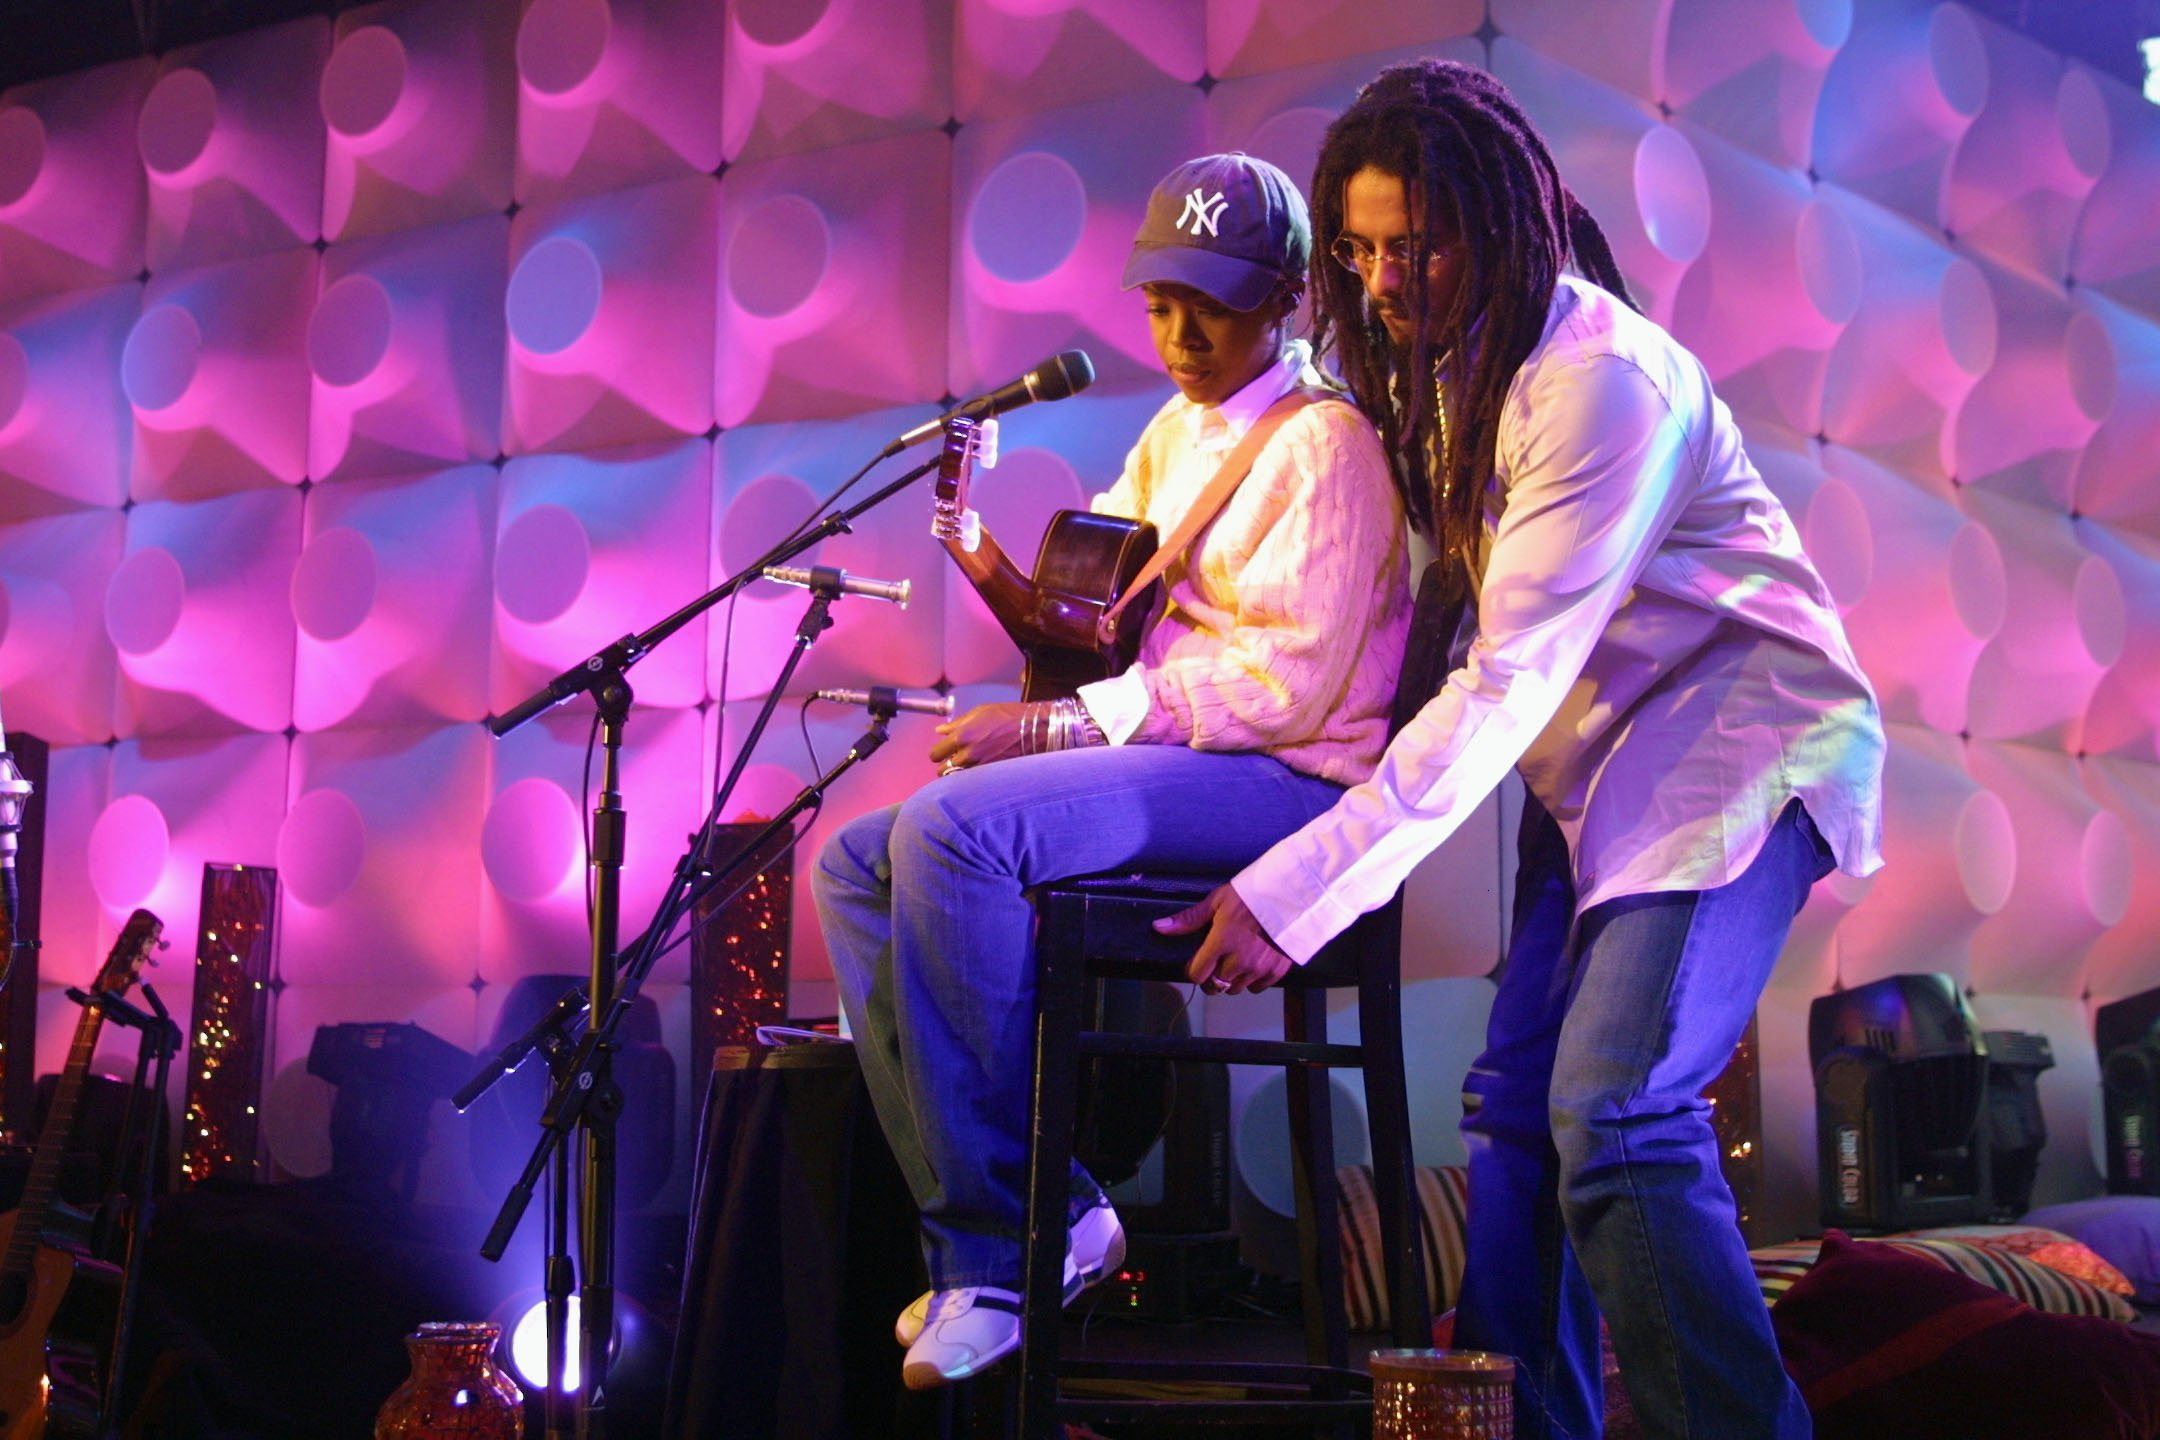 Rohan Marley helping out Lauryn Hill during rehearsals for 'MTV Unplugged' at the MTV Studios in New York City on Jul. 21, 2001. | Photo: Getty Images